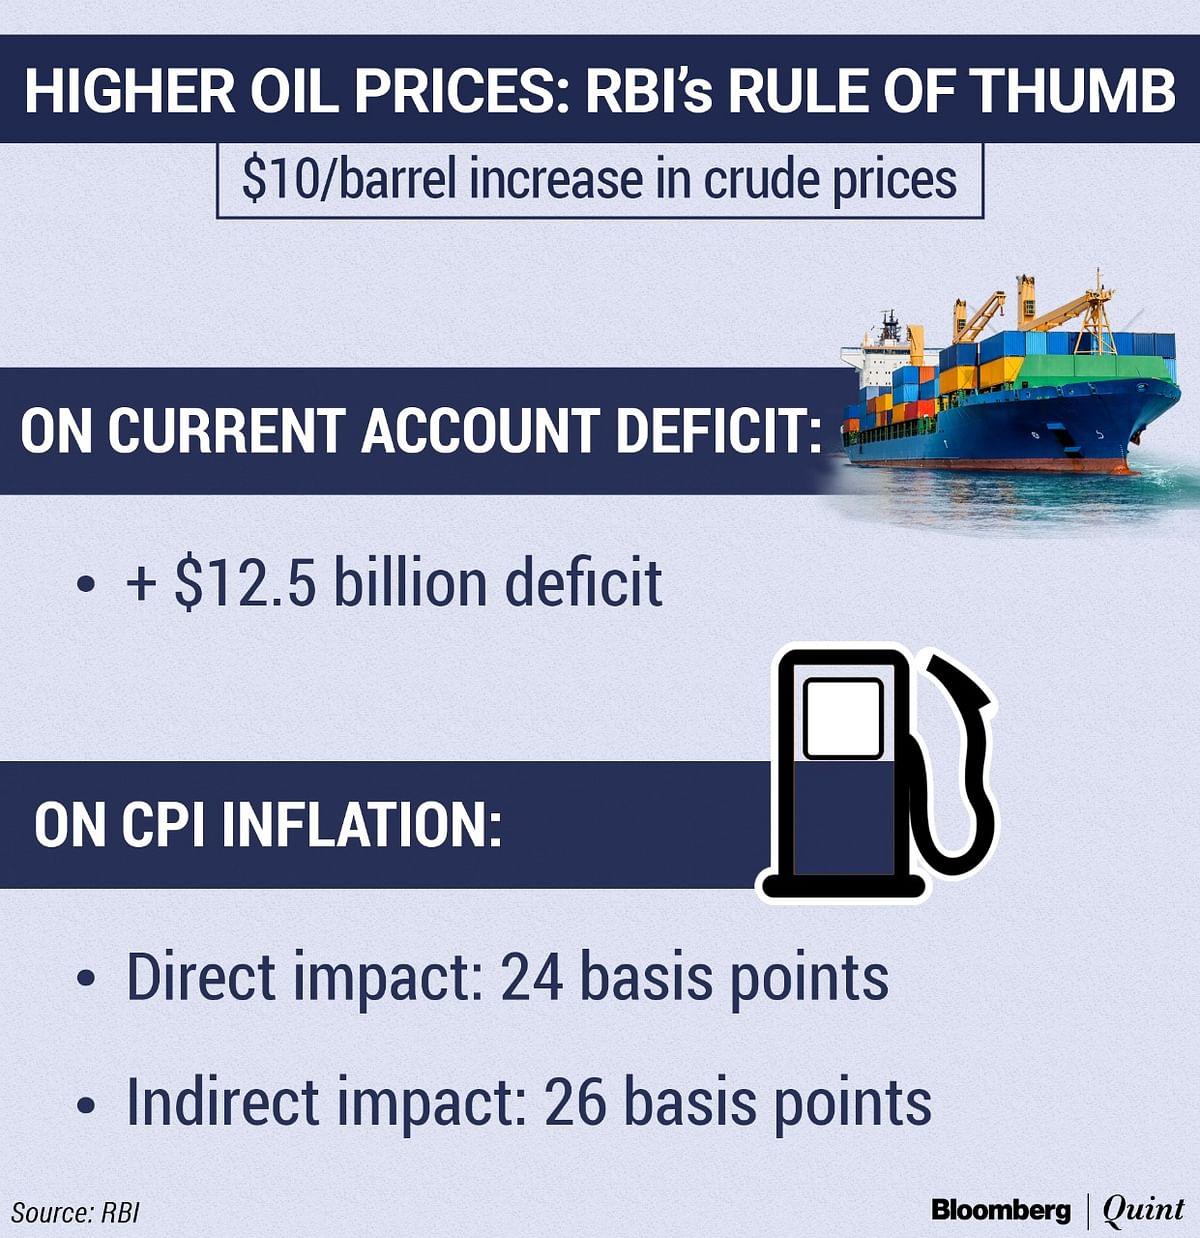 How Rising Oil Prices Impact The Indian Economy